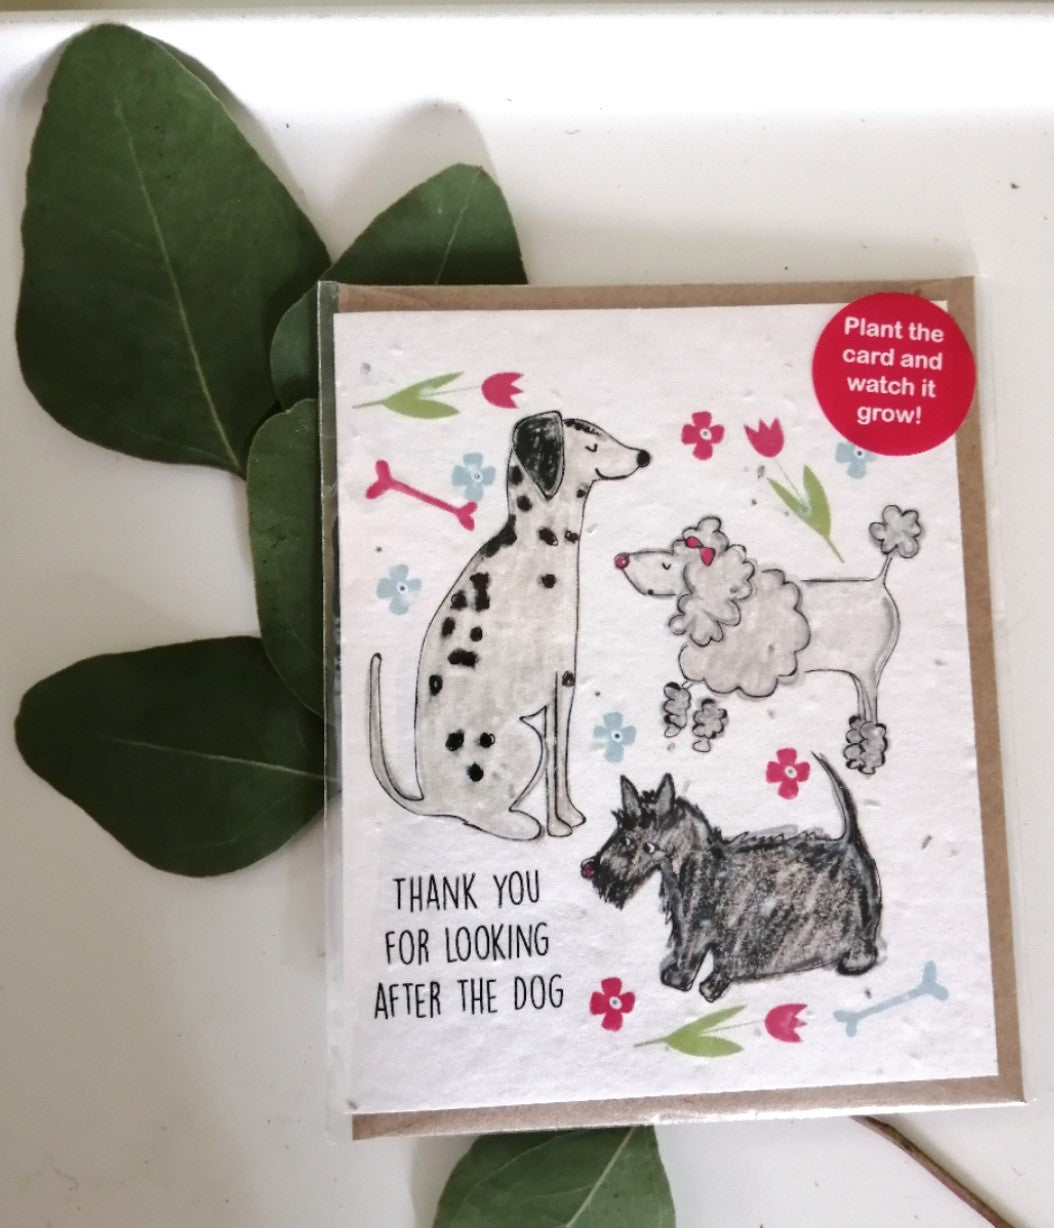 'Thank you for looking after the dog' seed card